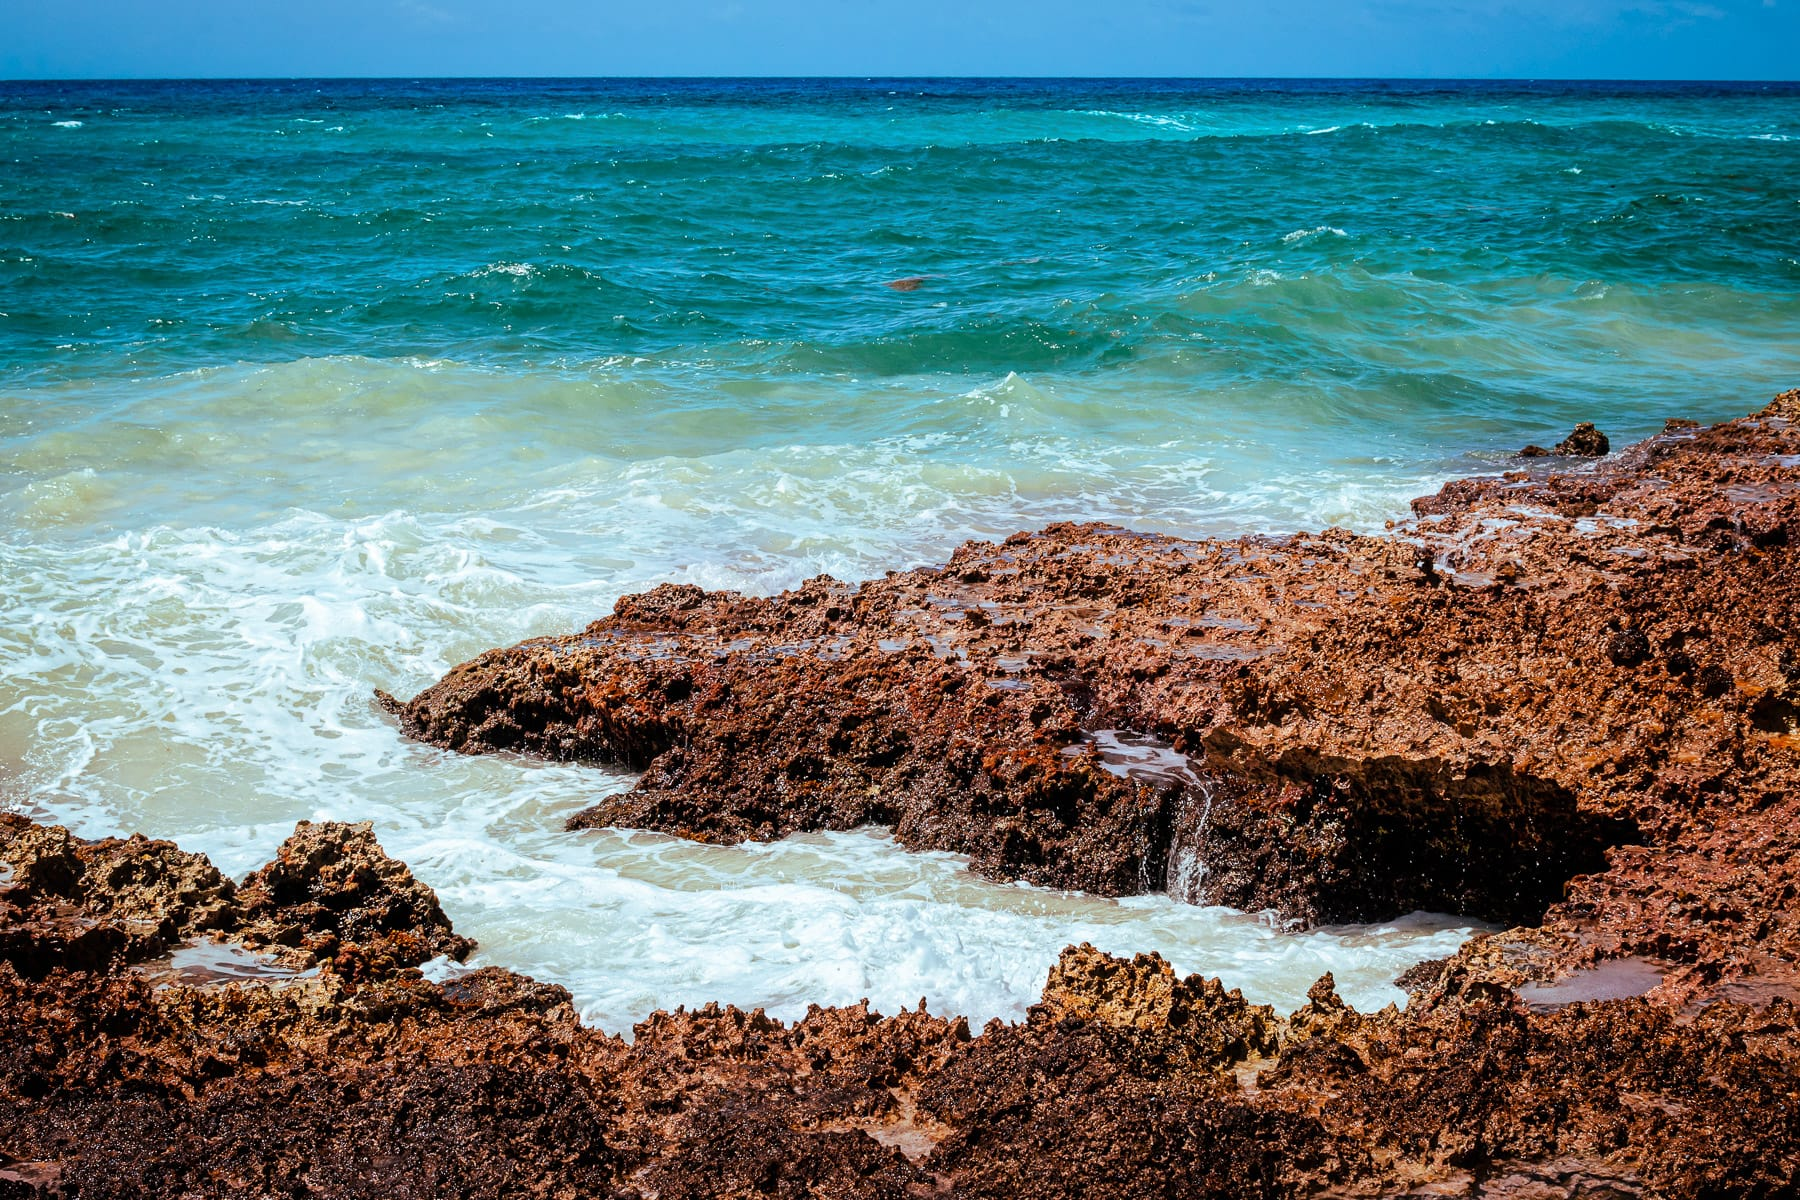 Jagged rocks jut into the sea at Punta Morena, Cozumel, Mexico.